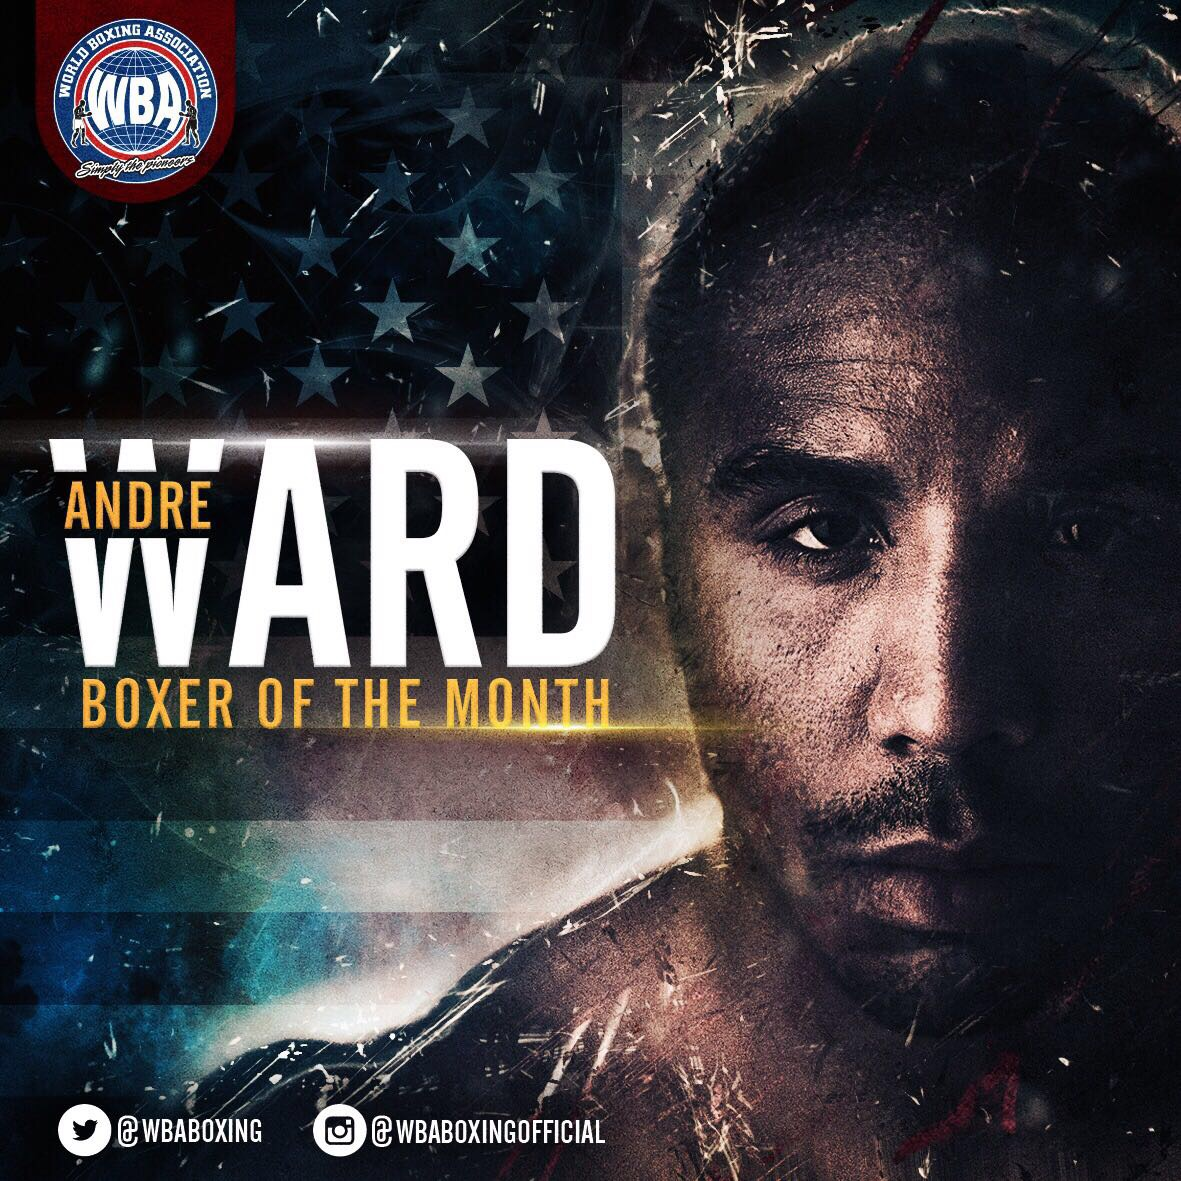 Andre Ward Undisputed WBA Light Heavyweight Champion